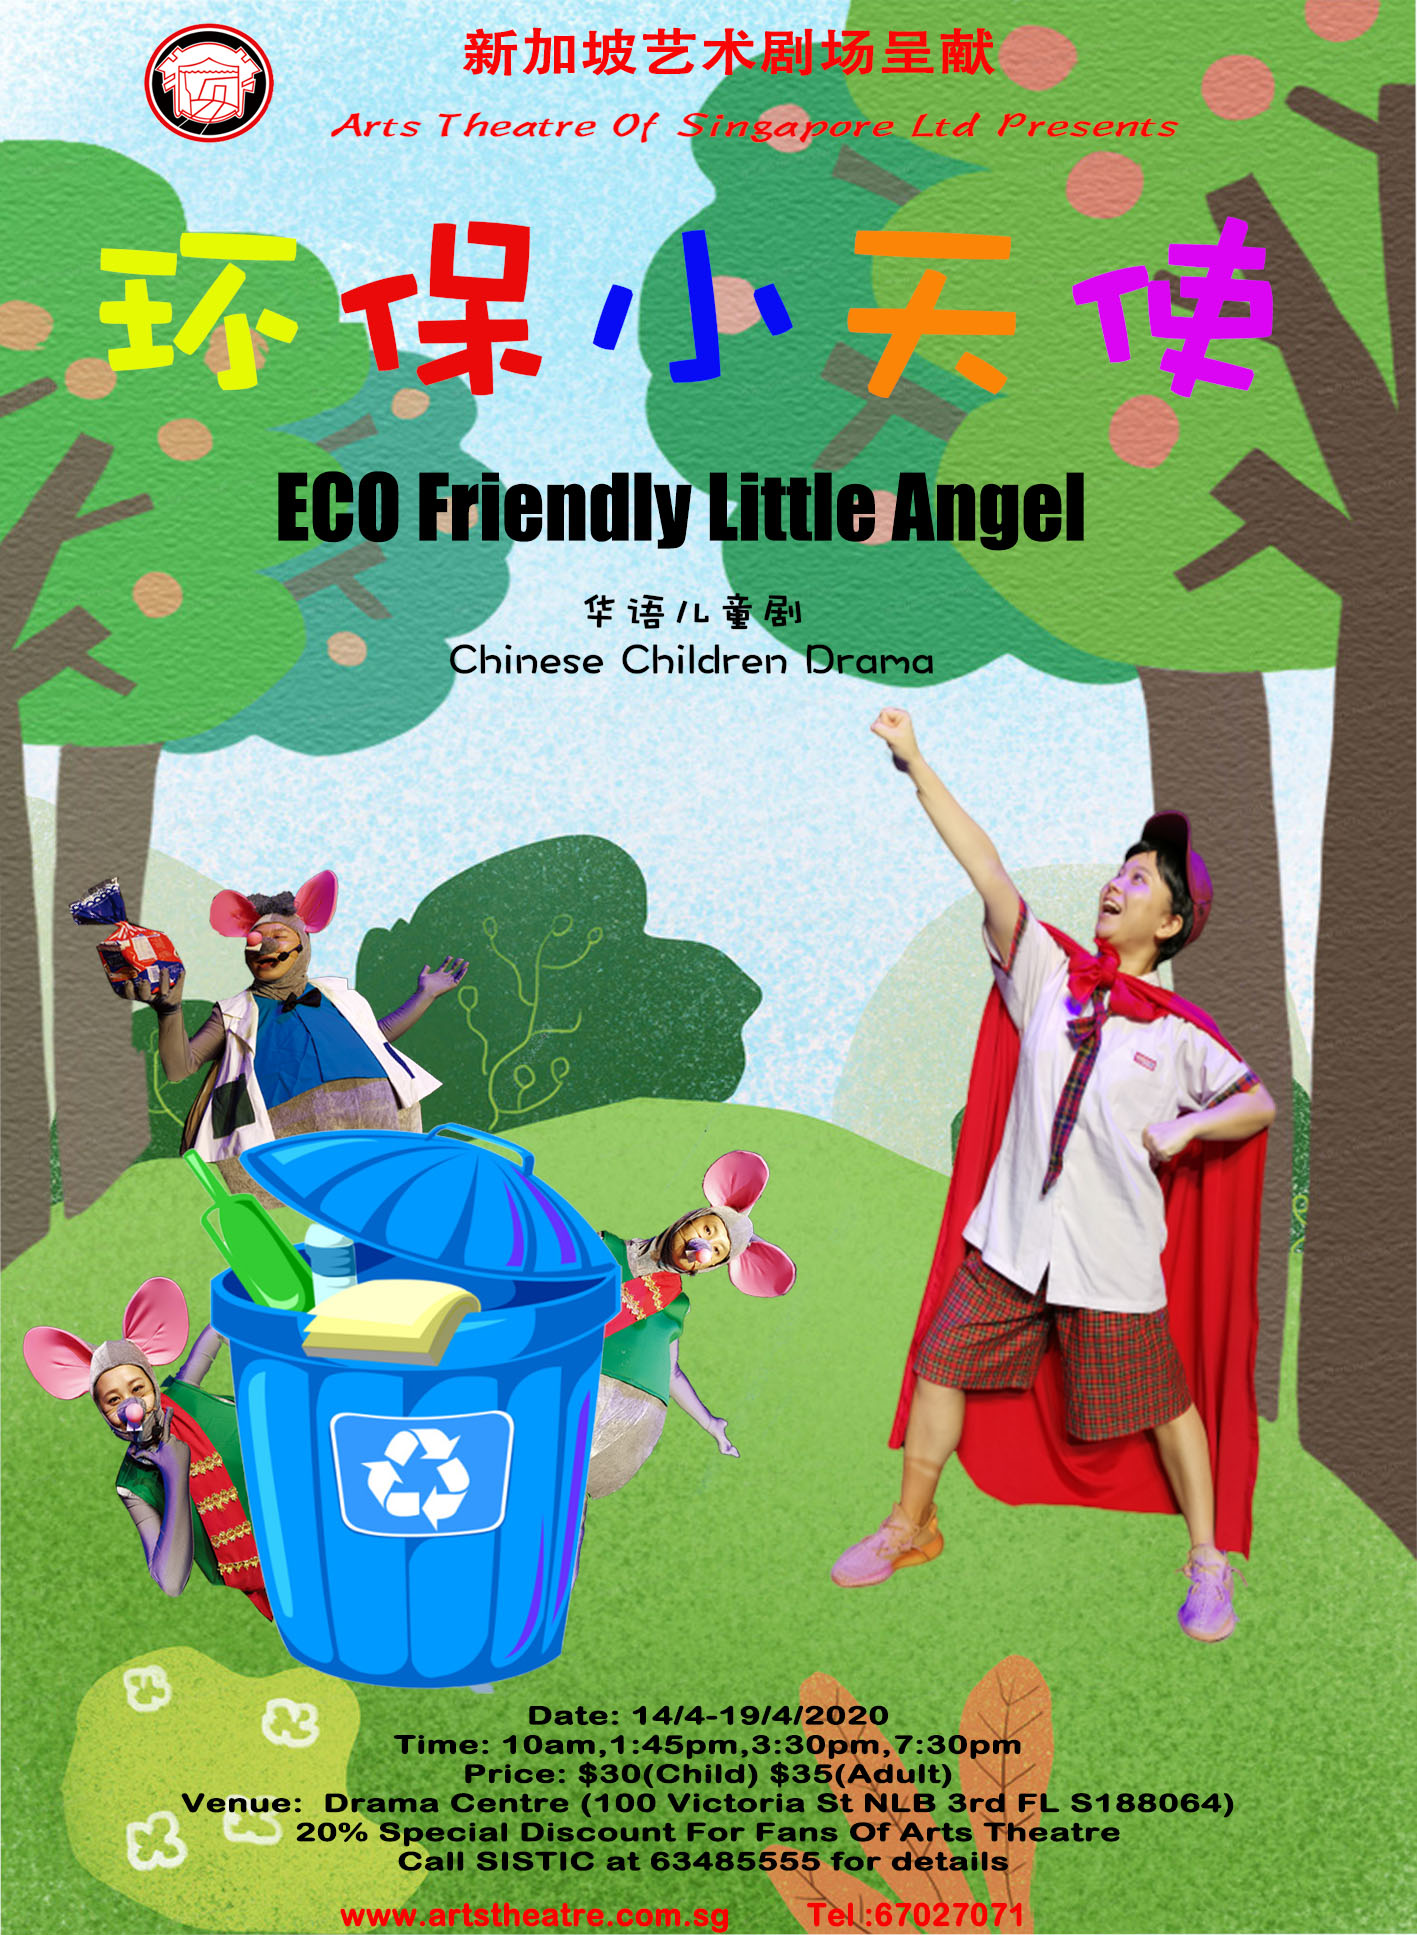 Eco Friendly Little Angel Performance